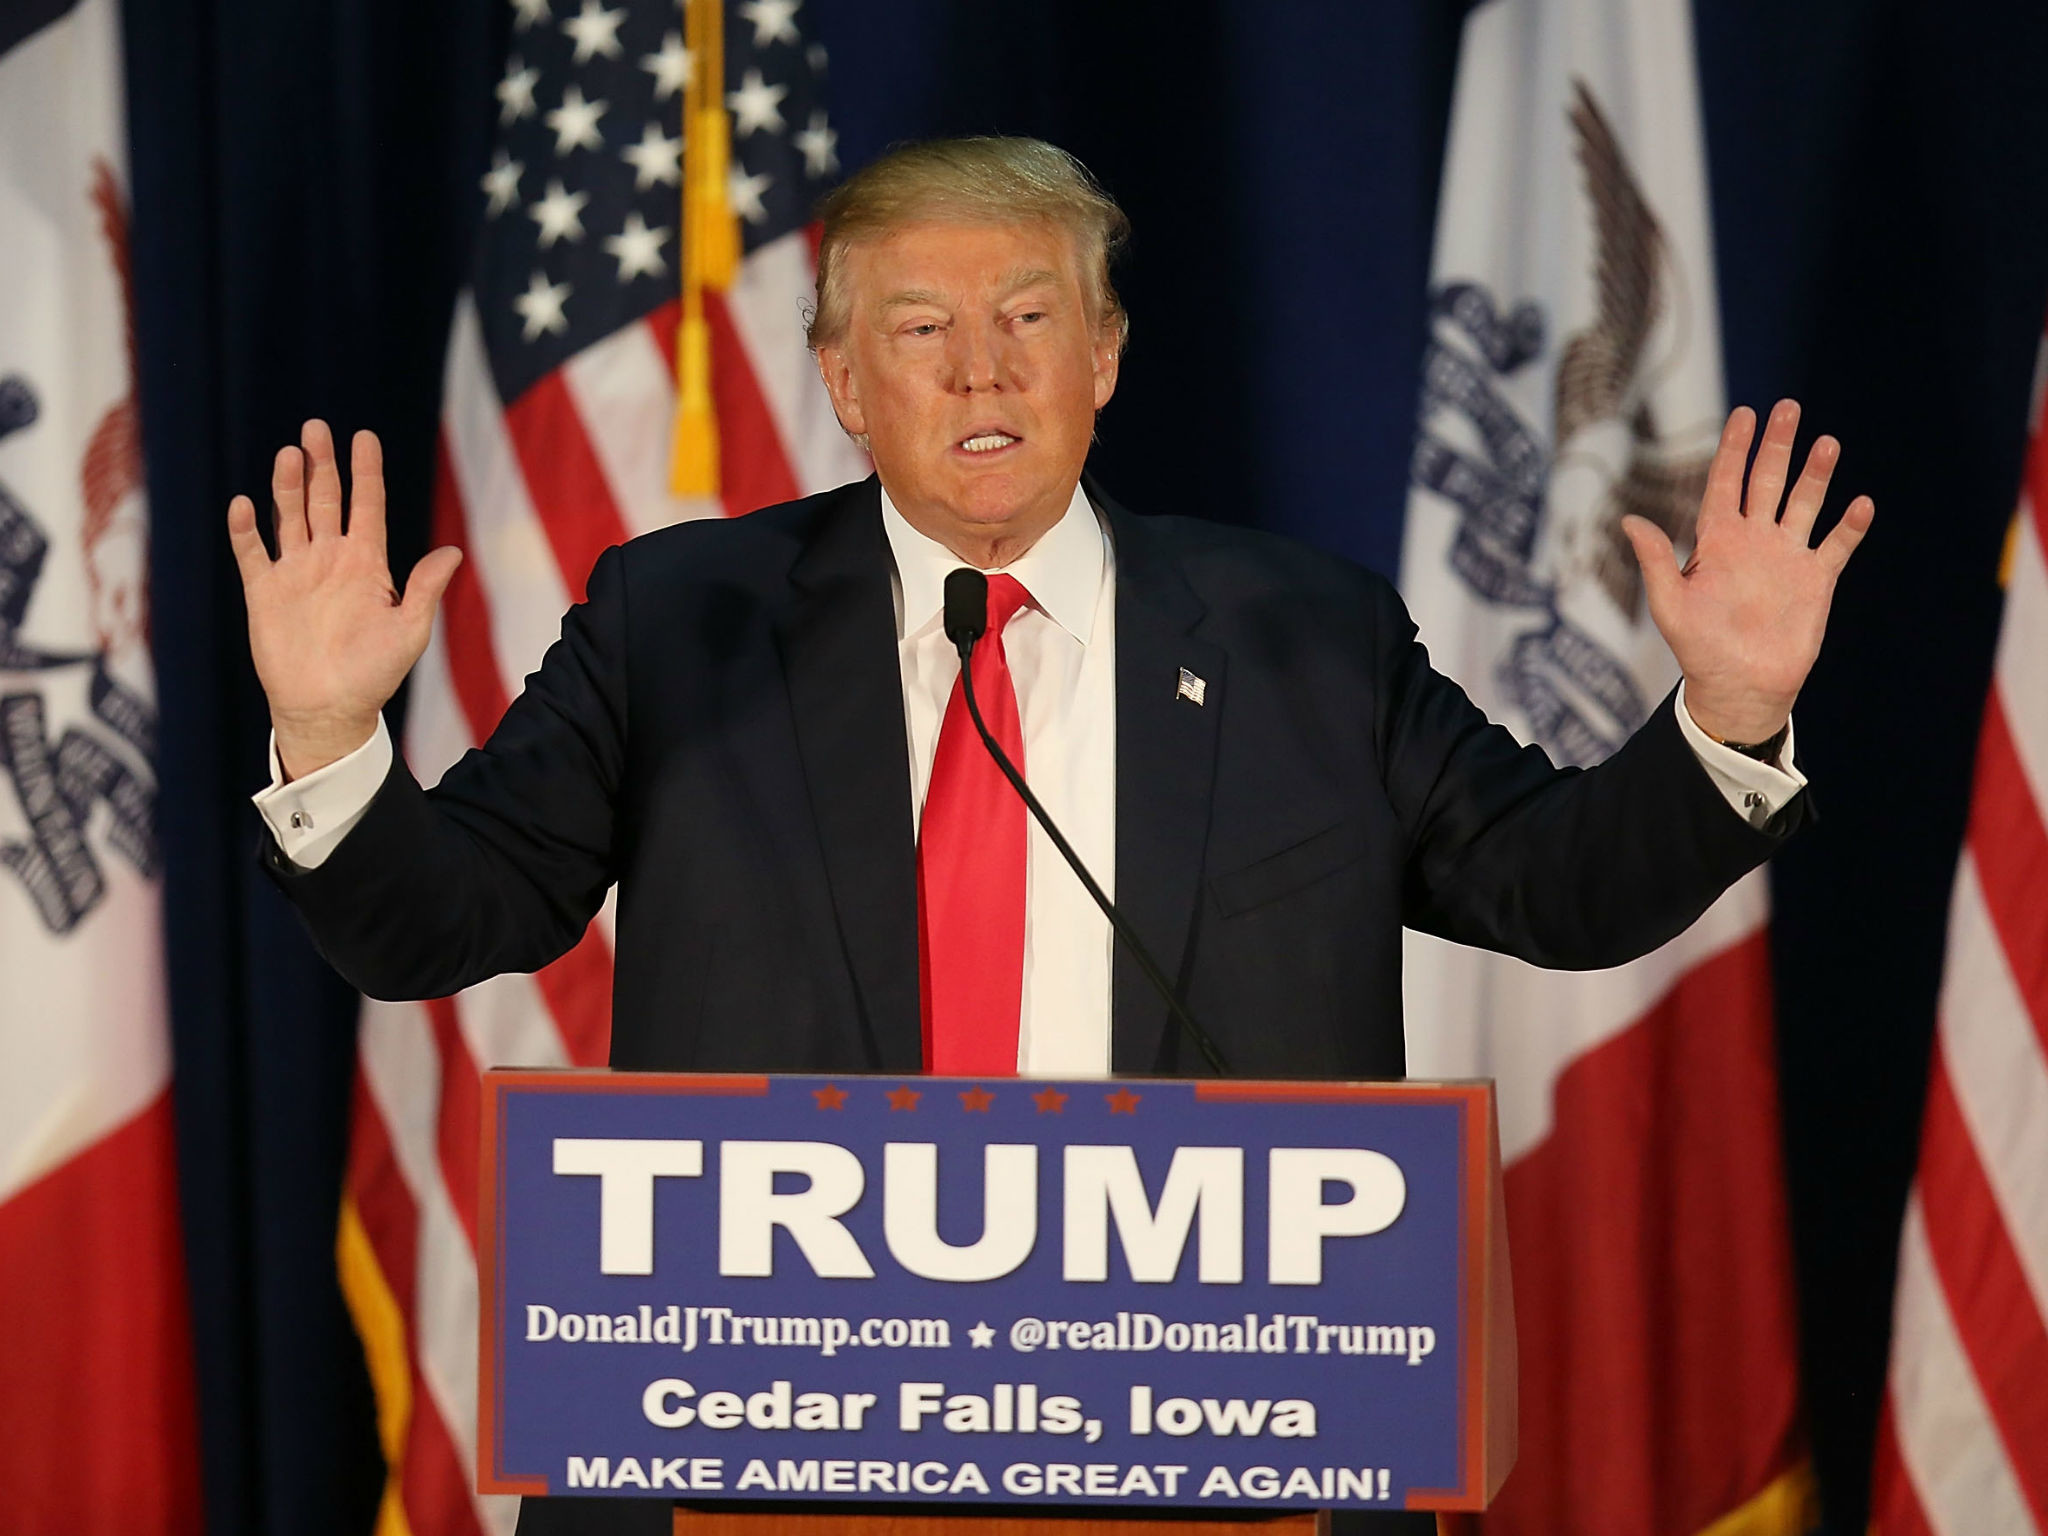 Donald Trump: GOP frontrunner calls sound technician 'son of a b***h' at  Florida rally | The Independent